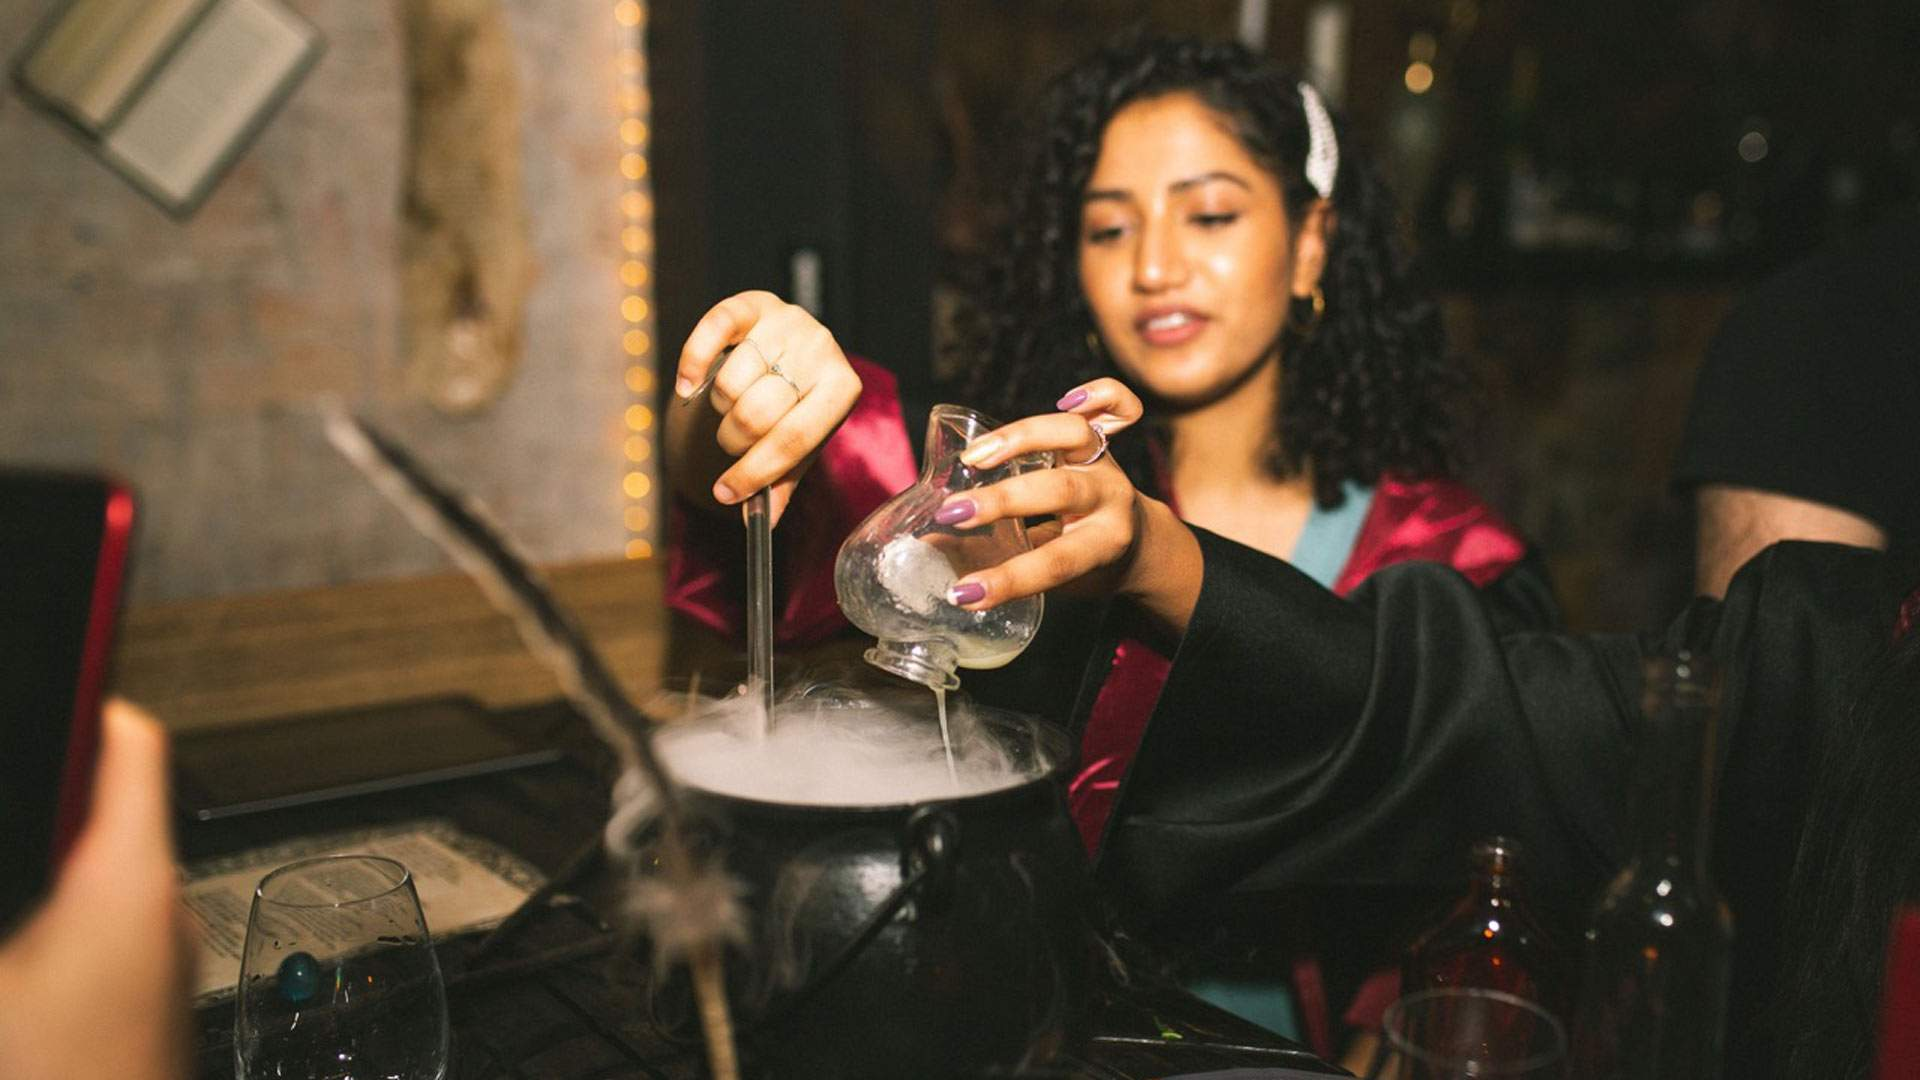 A 'Harry Potter'-Themed 'Potions' Bar Is Popping Up in Auckland